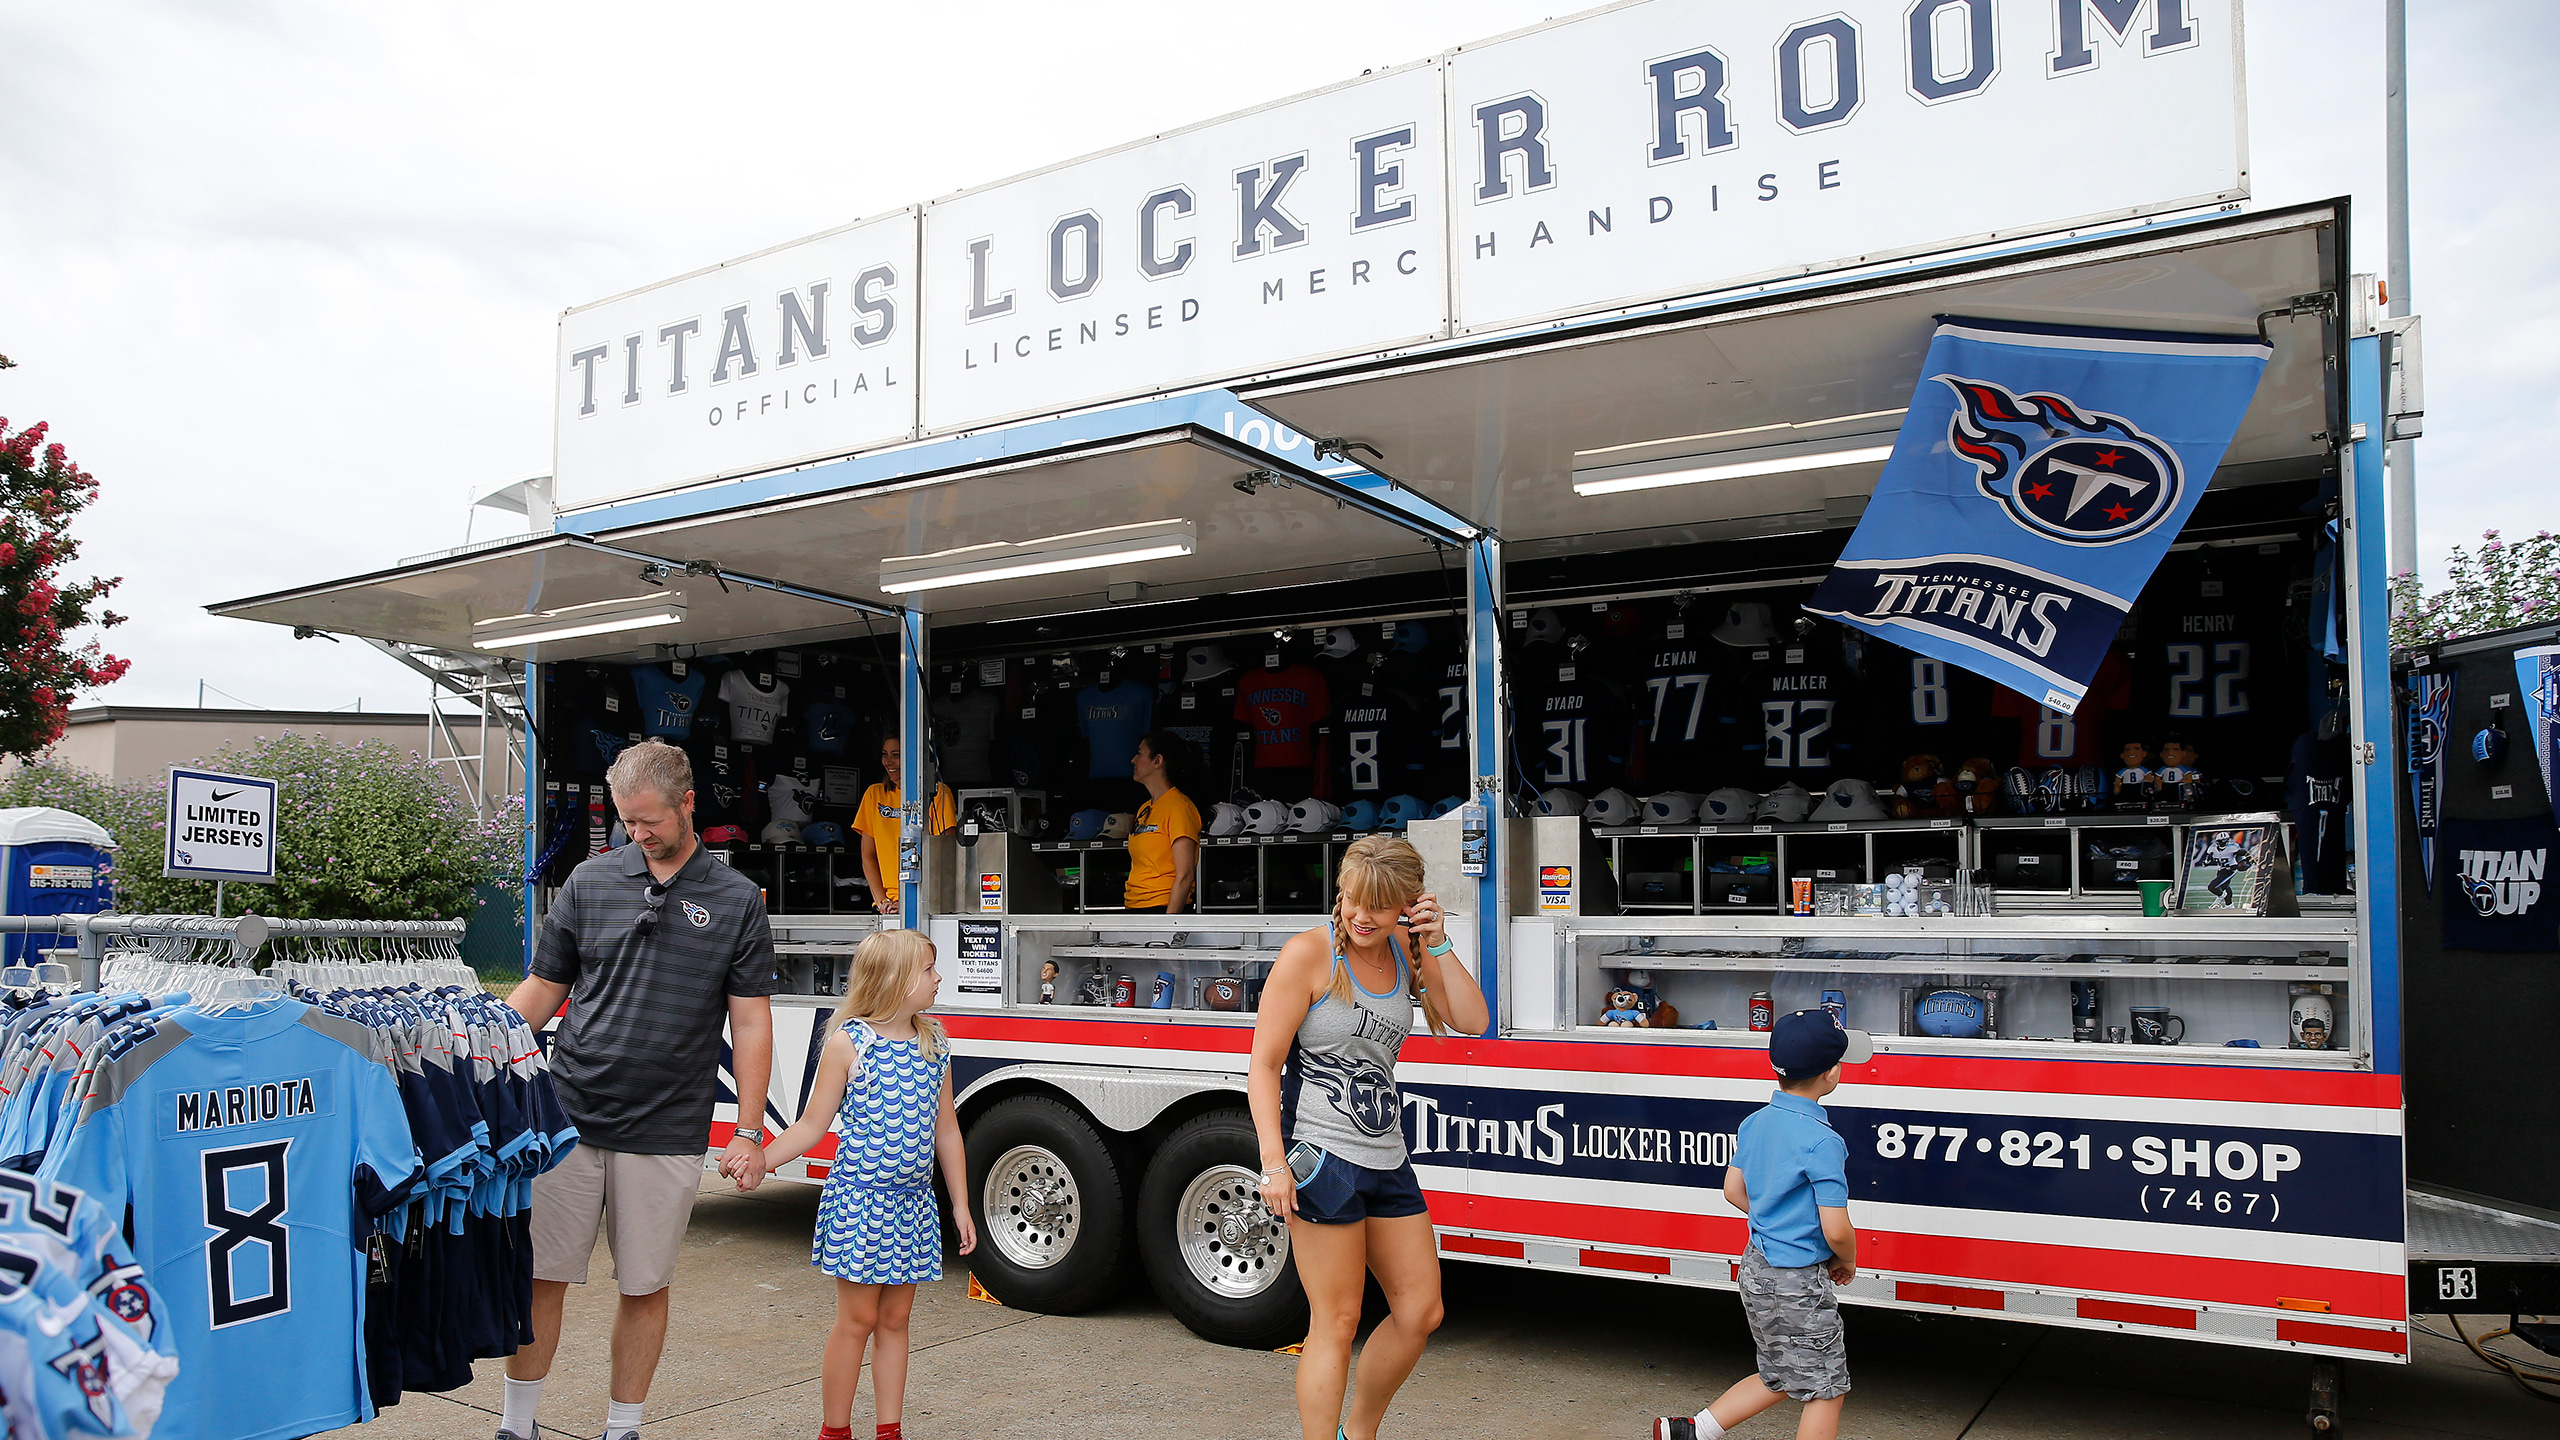 Merchandise and Concessions